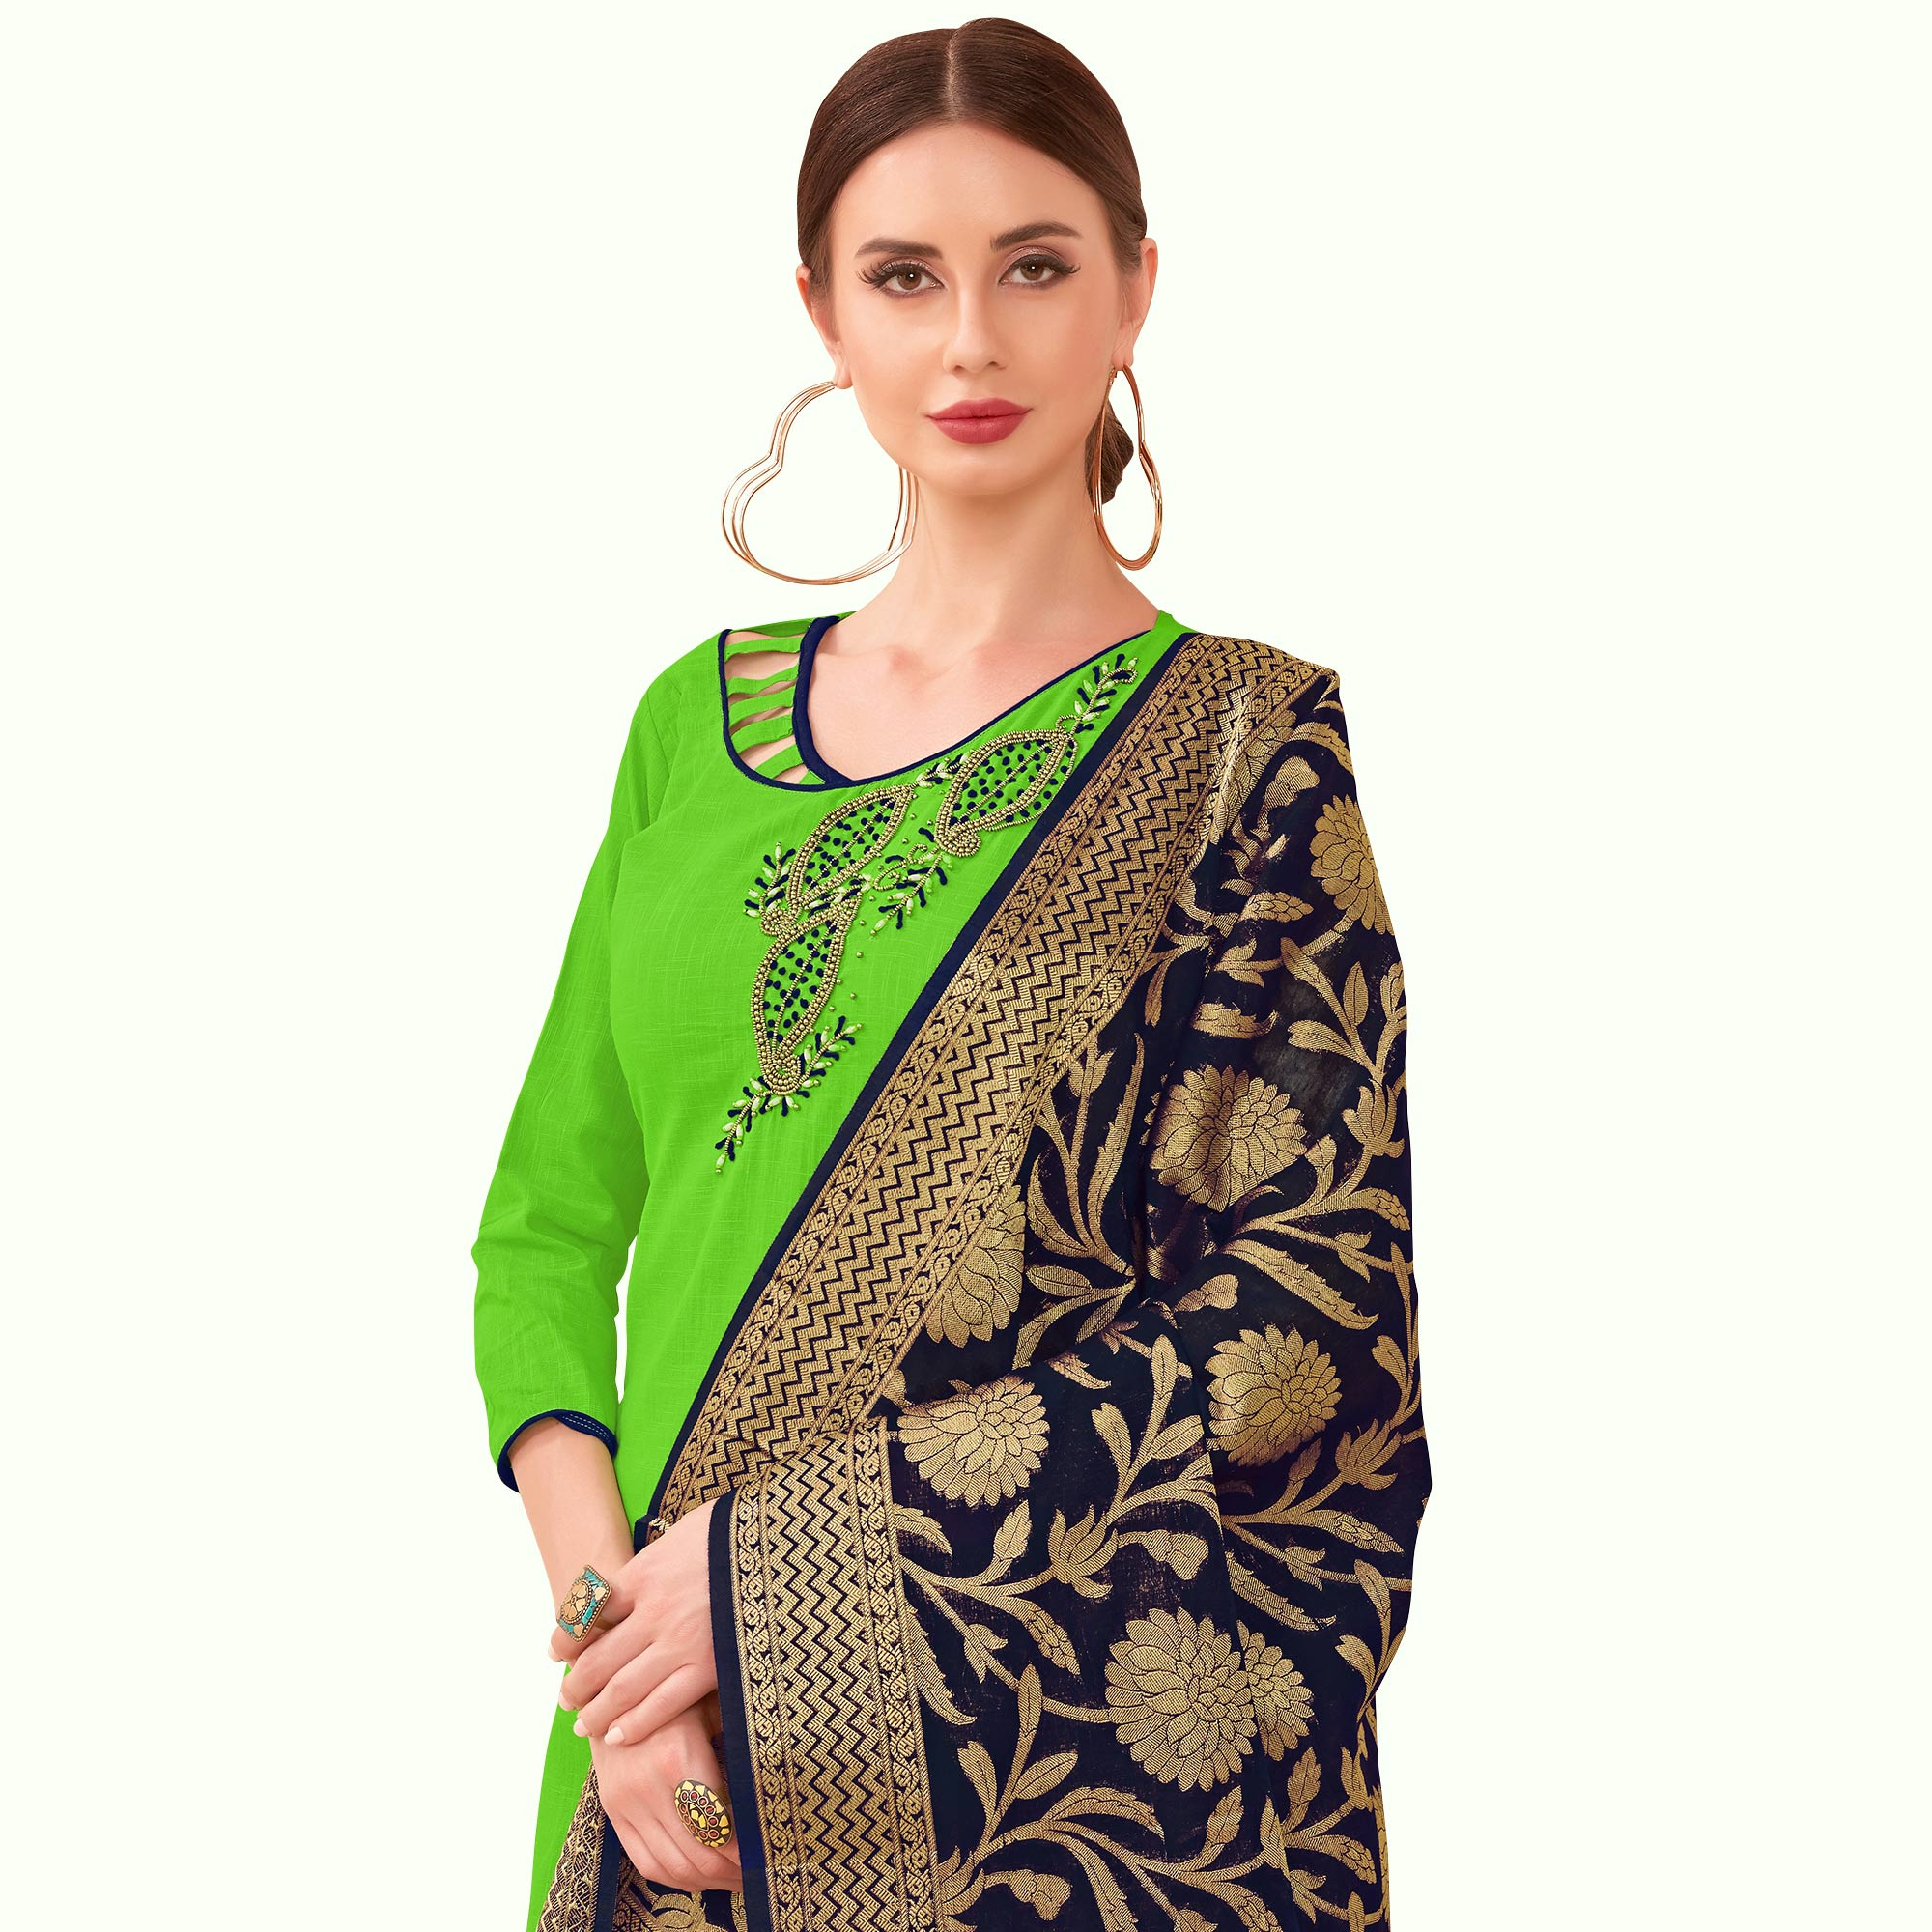 Ravishing Green Colored Festive Wear Embroidered Cotton Dress Material With Banarasi Silk Dupatta